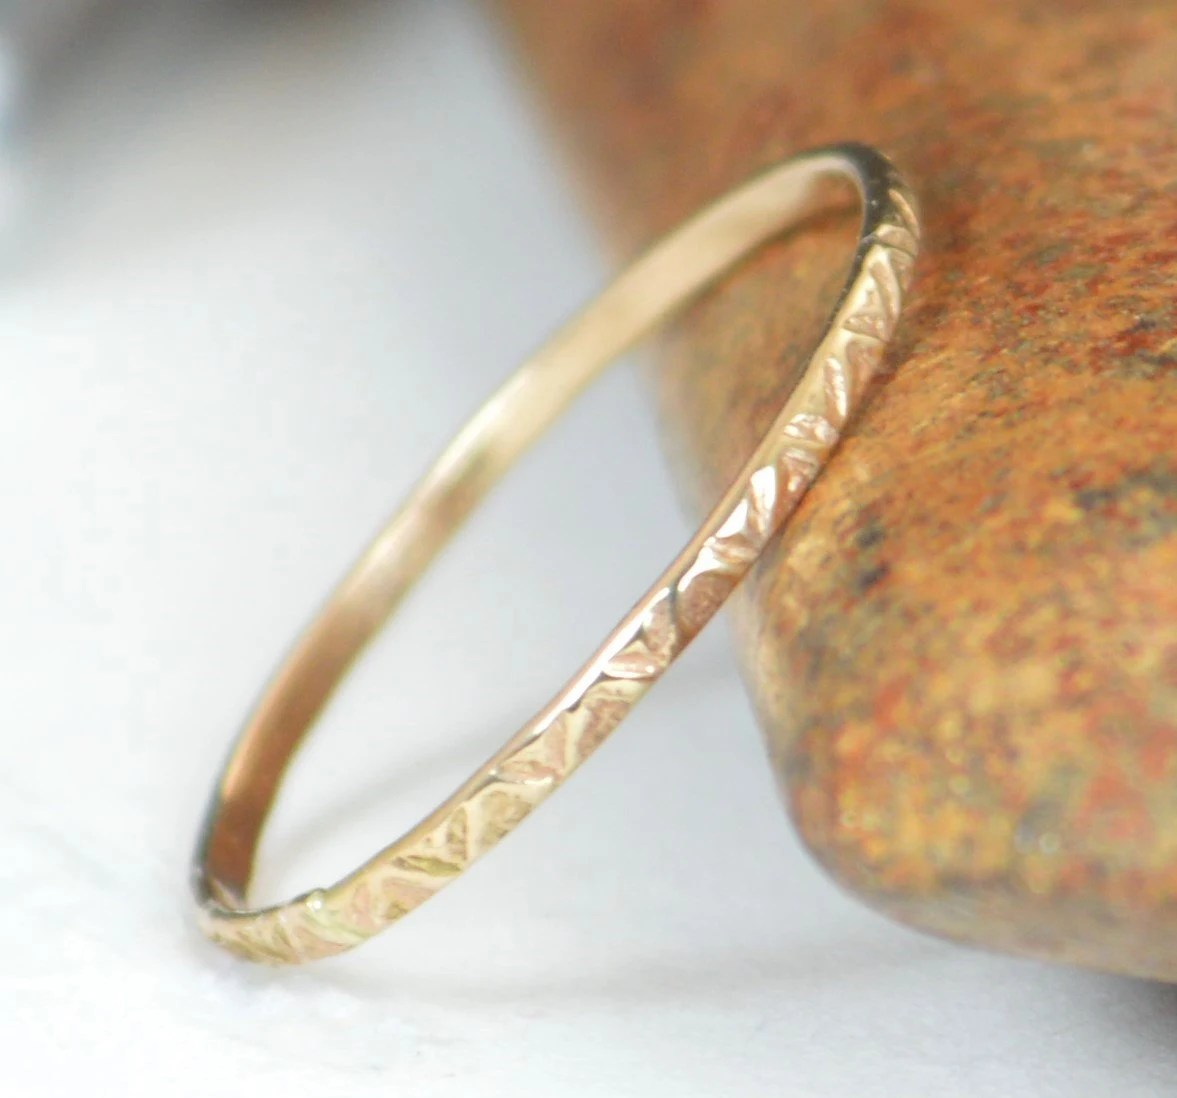 14k gold bohemian ring rustic wedding bohemian wedding rings 14k Gold Bohemian Ring Rustic Wedding Ring Thin Gold Ring Dainty 14k Gold Ring Ring Gold Boho Ring Rustic Gold Rings Gold Band A19